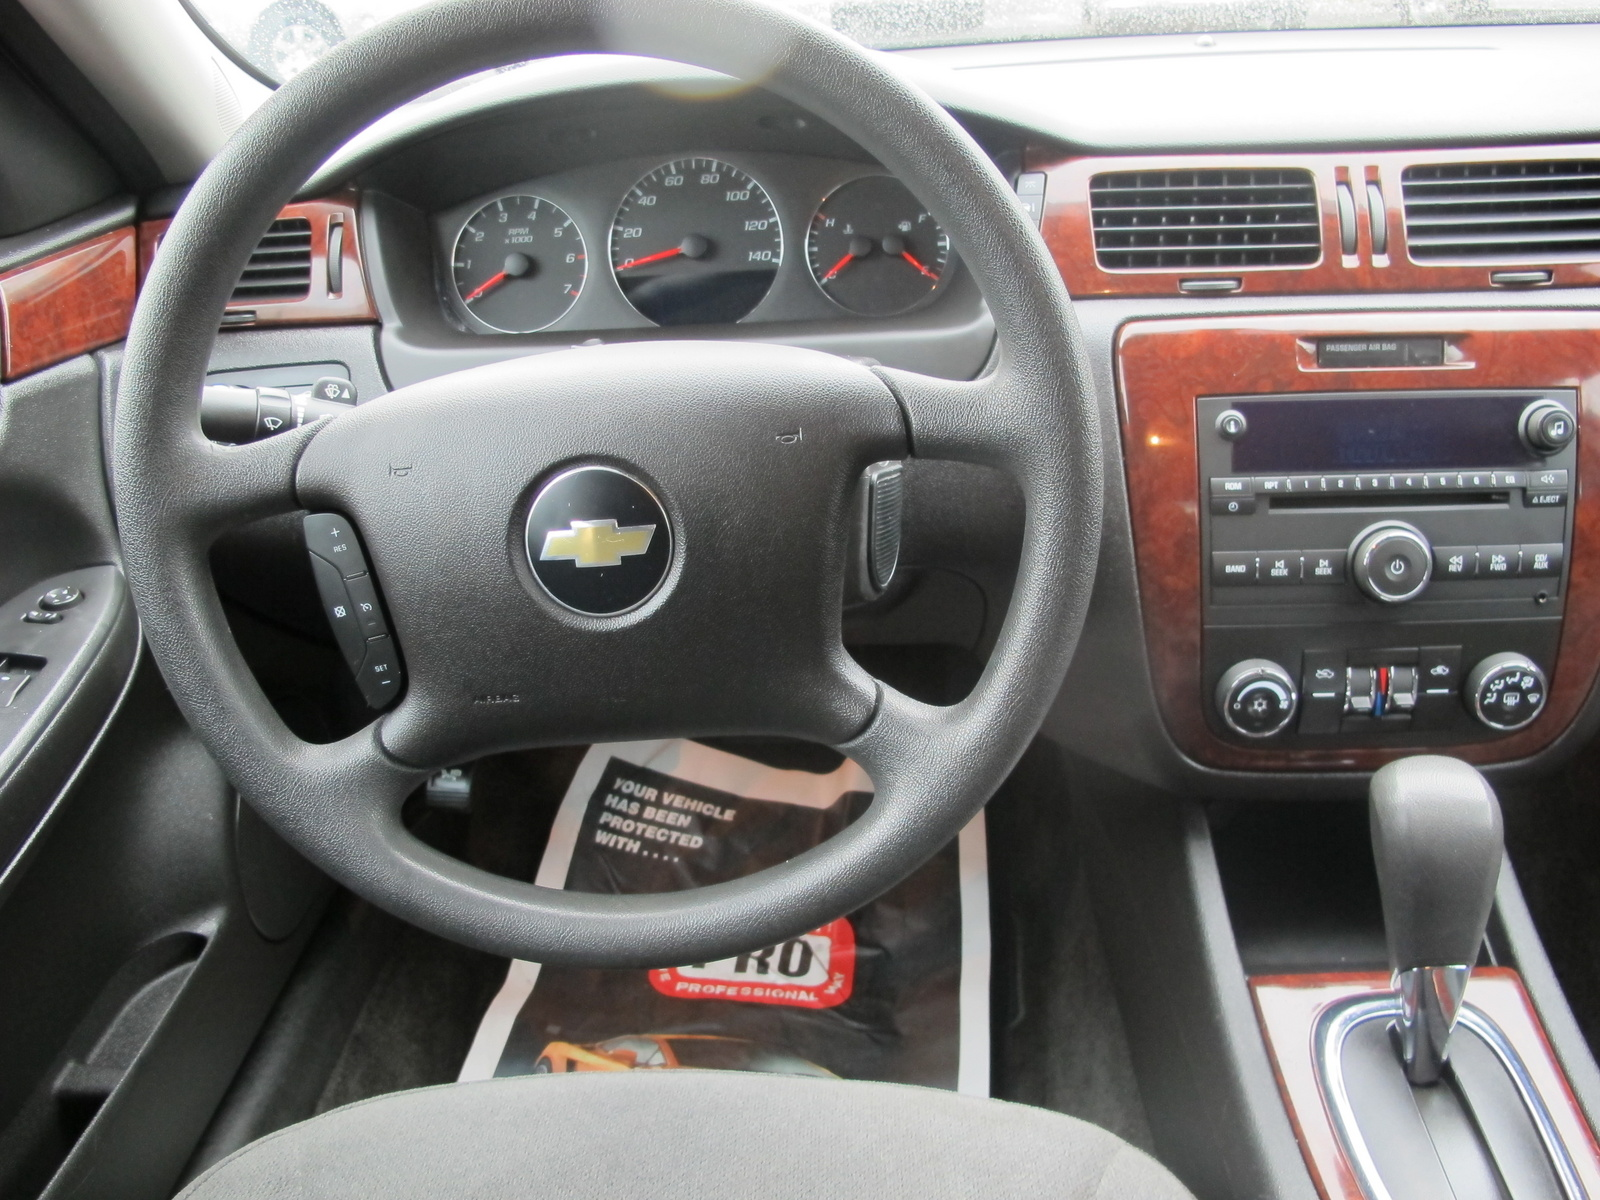 2002 chevrolet impala electrical system problems autos post. Black Bedroom Furniture Sets. Home Design Ideas